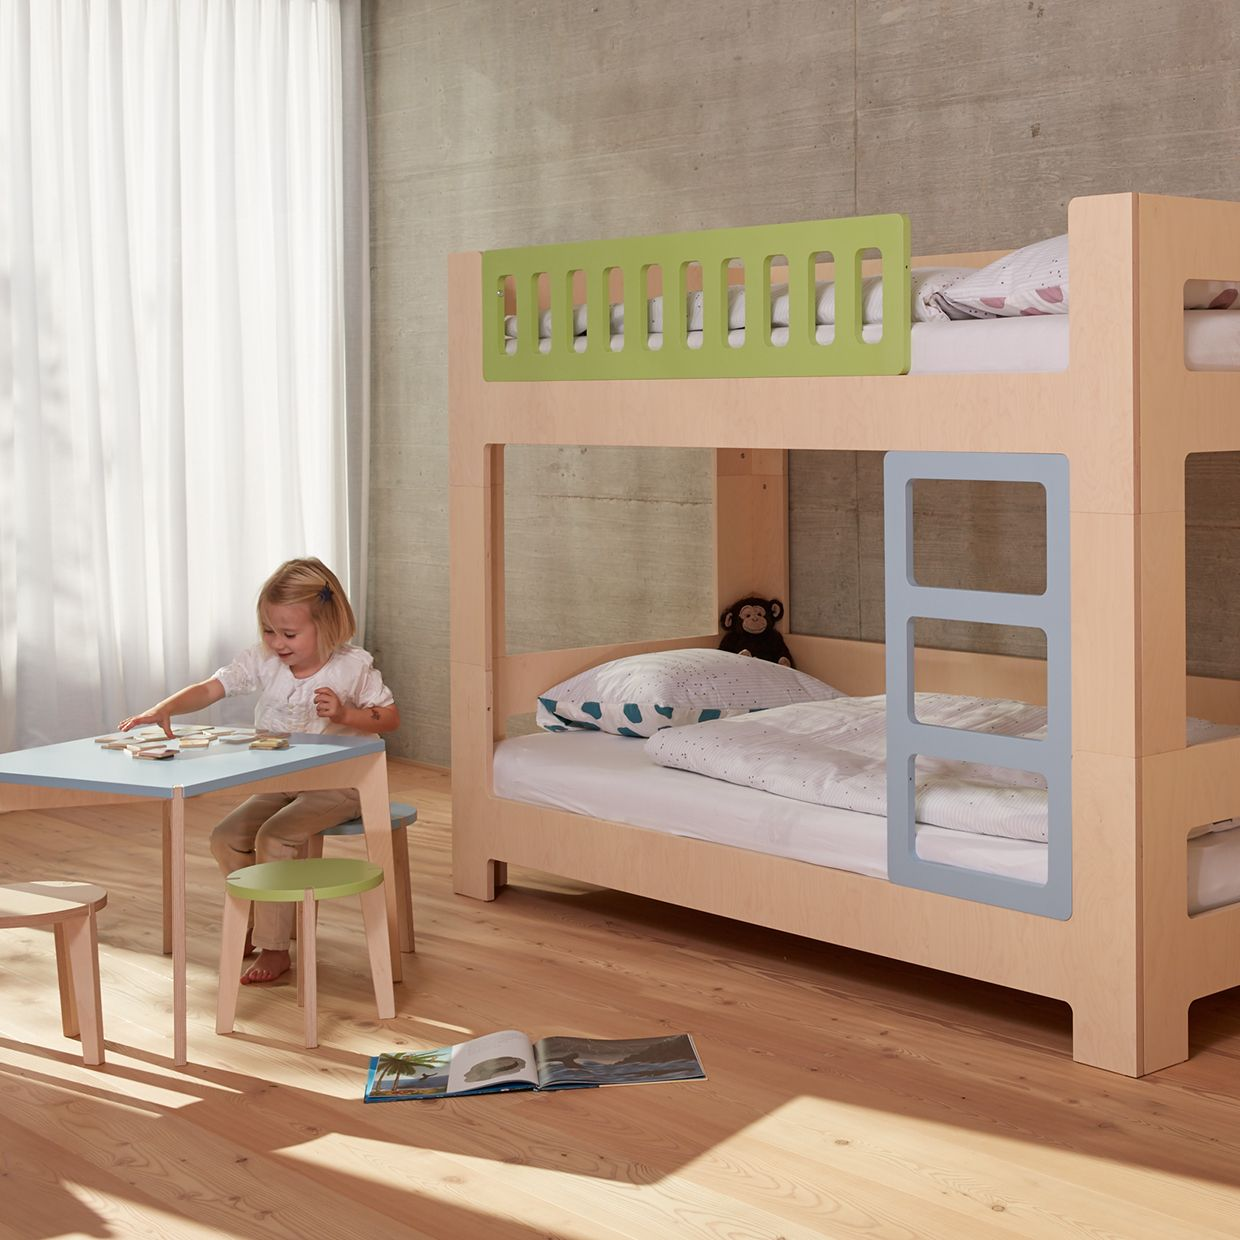 Loft Bed For Children By Blueroom Get In Contact With The